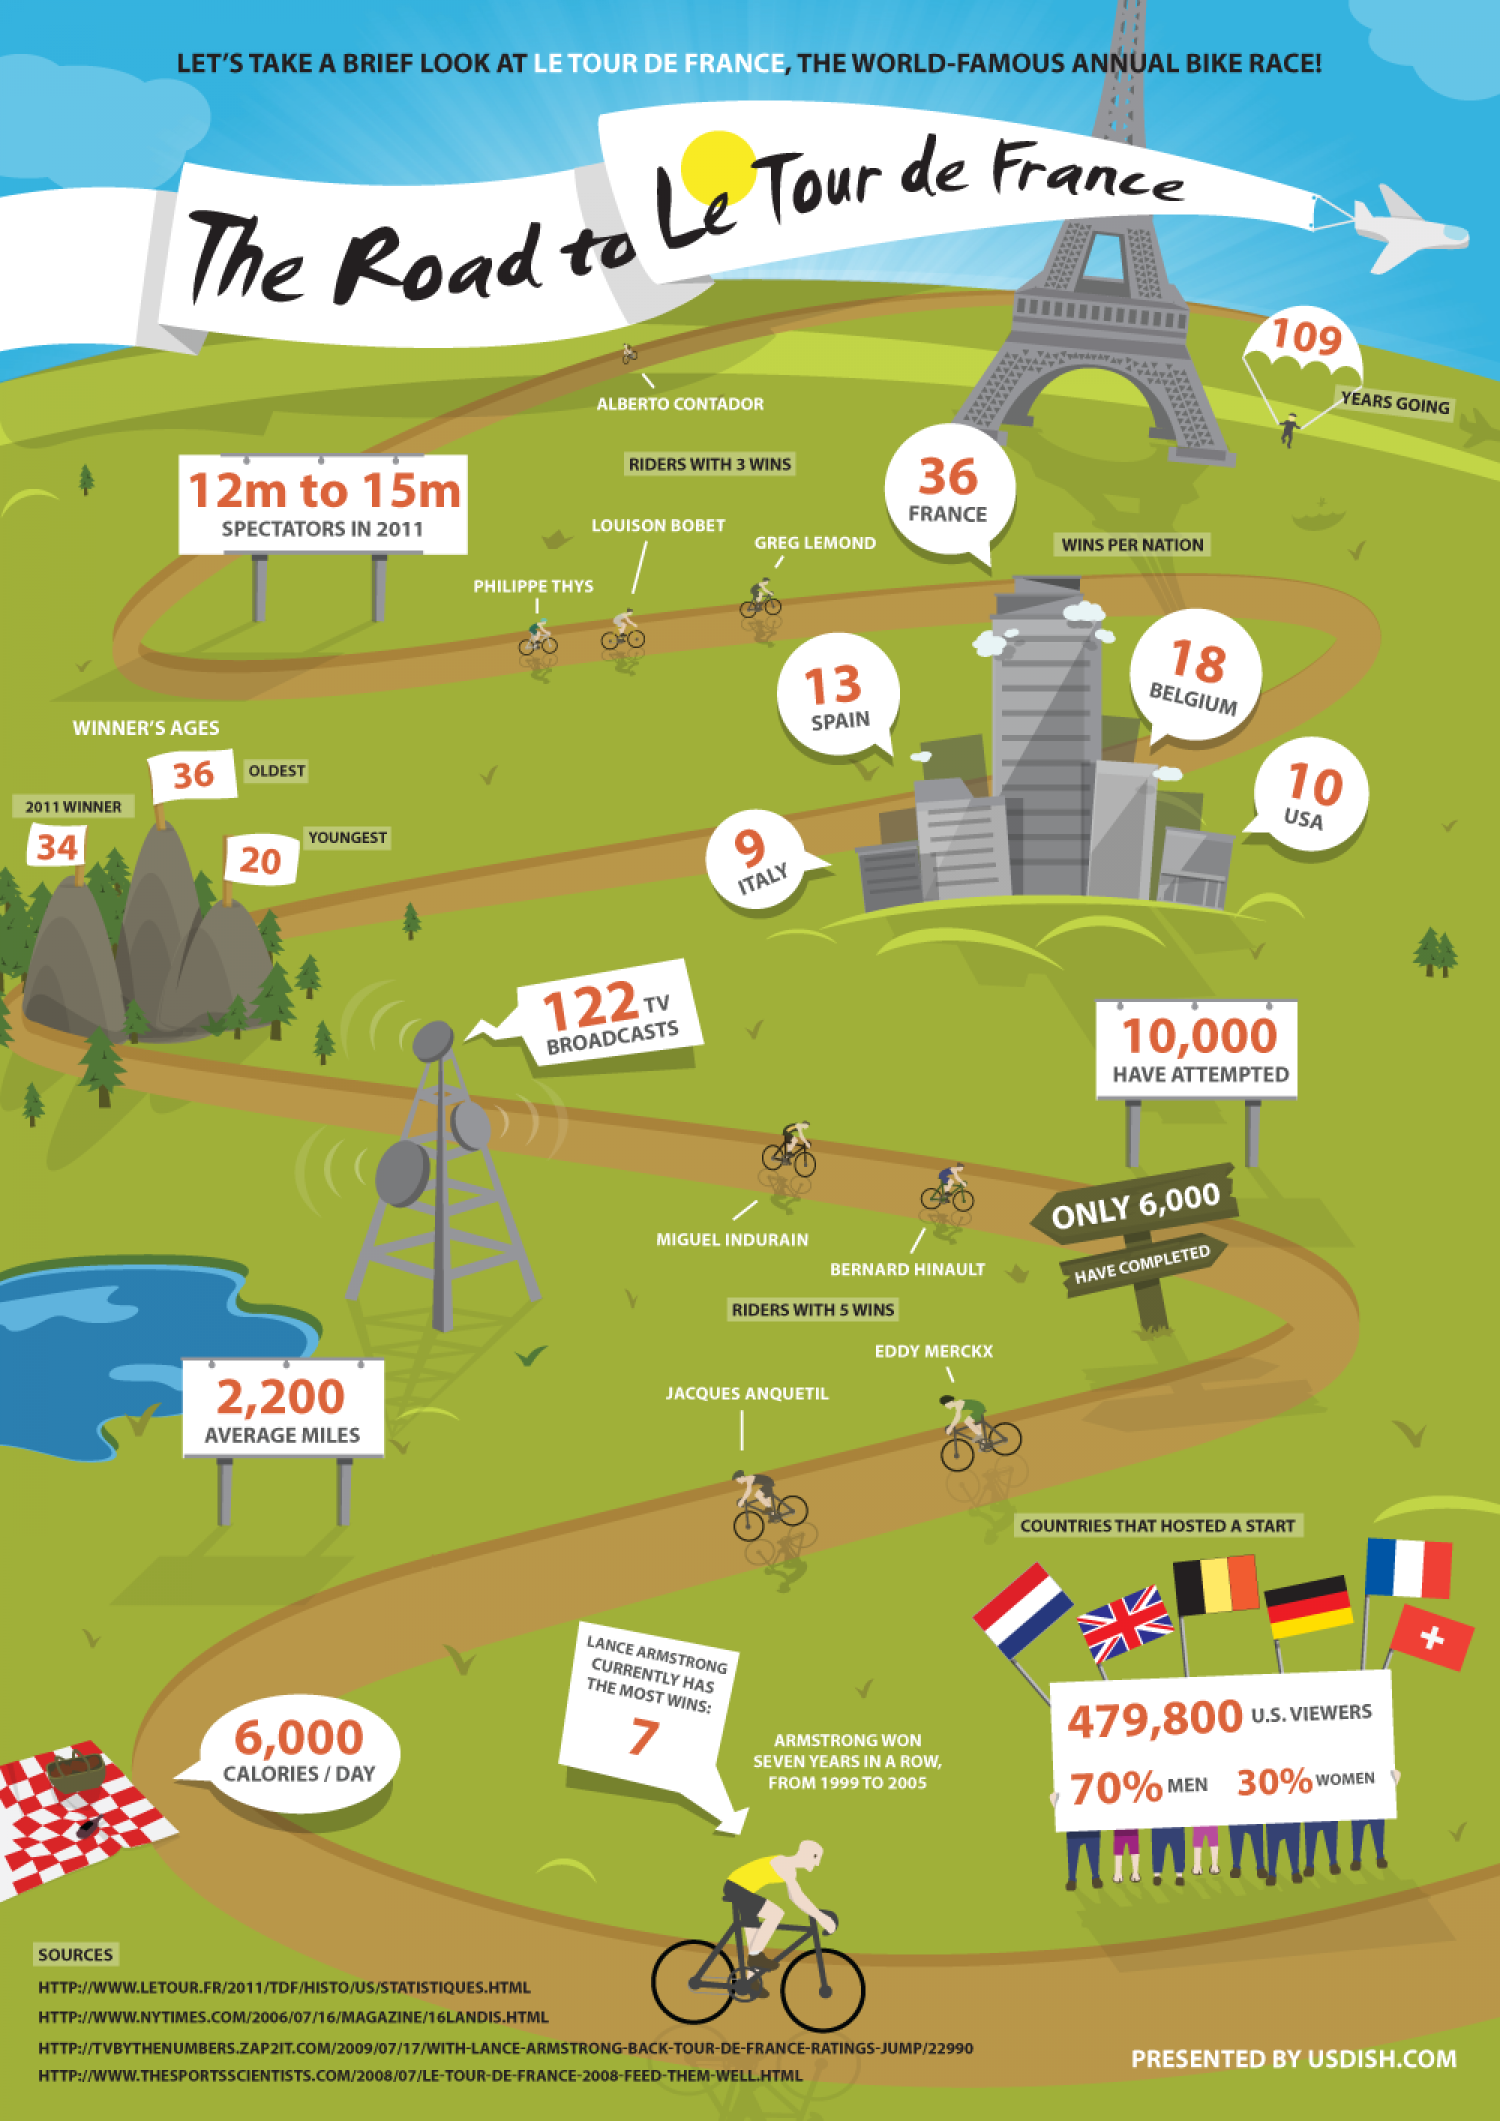 The Road to Le Tour de France Infographic